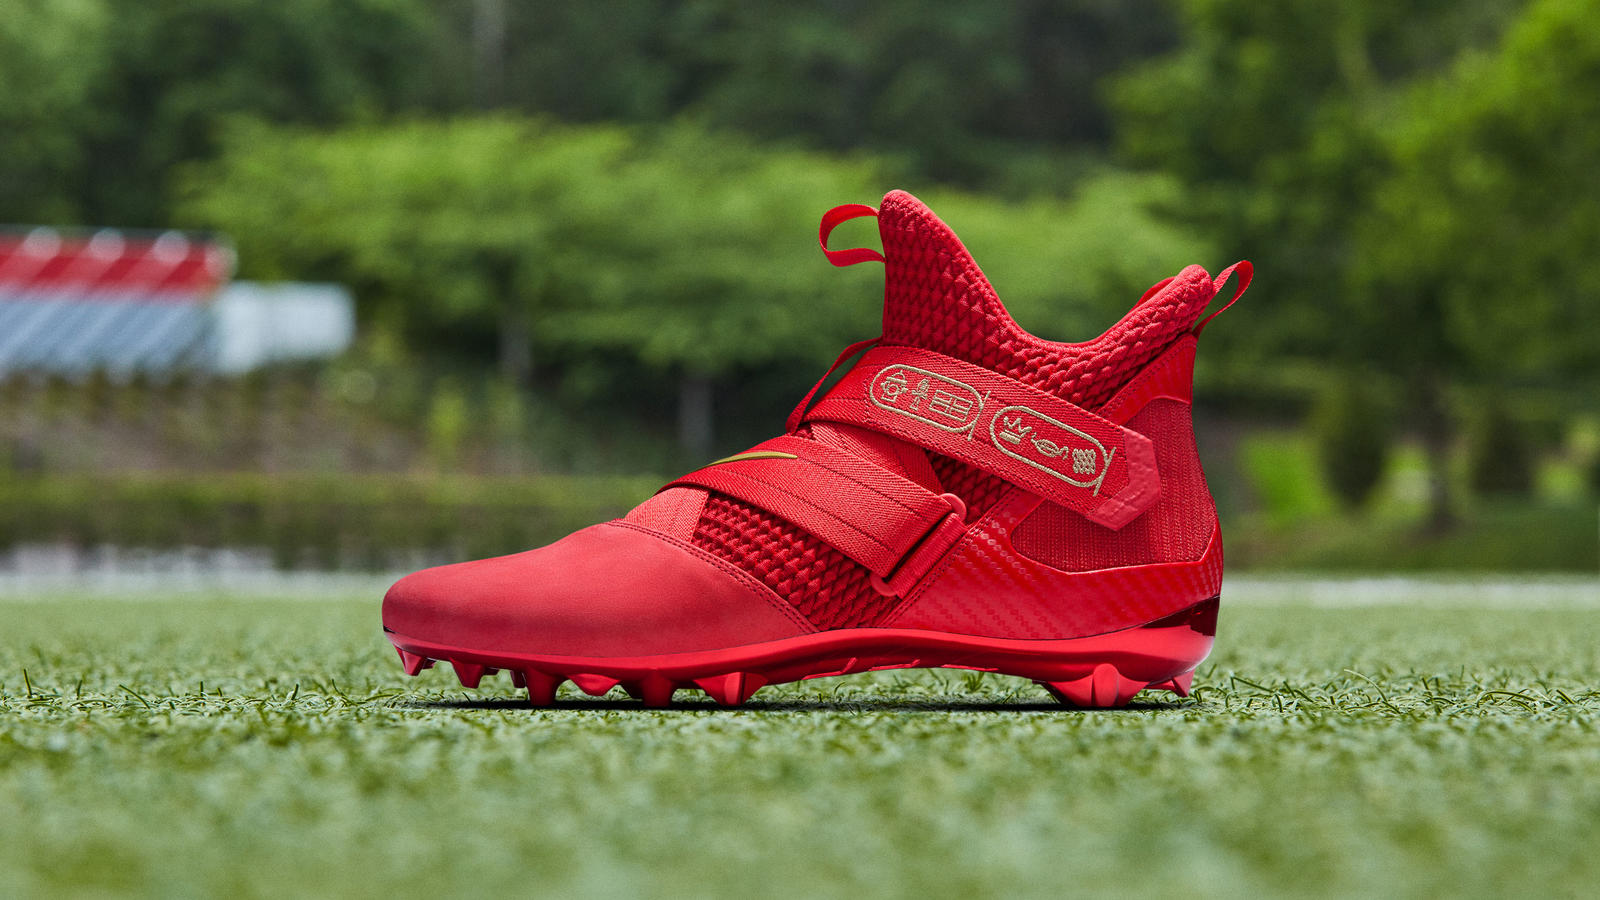 Nike LEBRON Soldier 12 Cleat (Odell